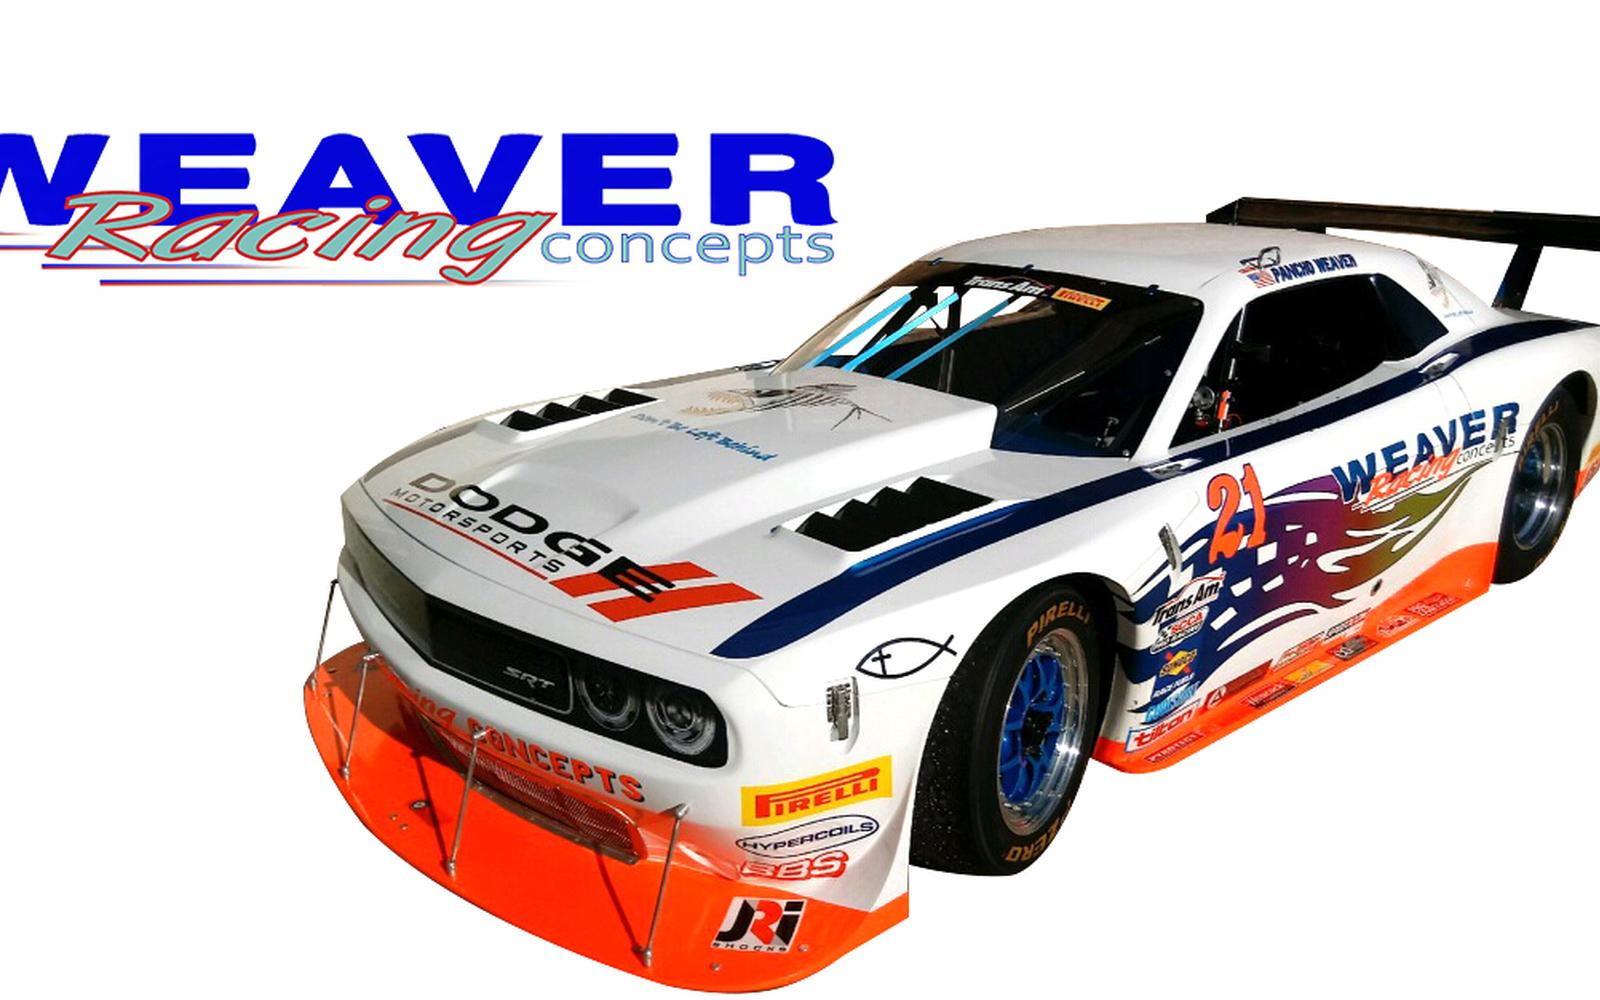 Weaver Racing Concepts Debuting New 2018 Chassis at Indy with Boris Said